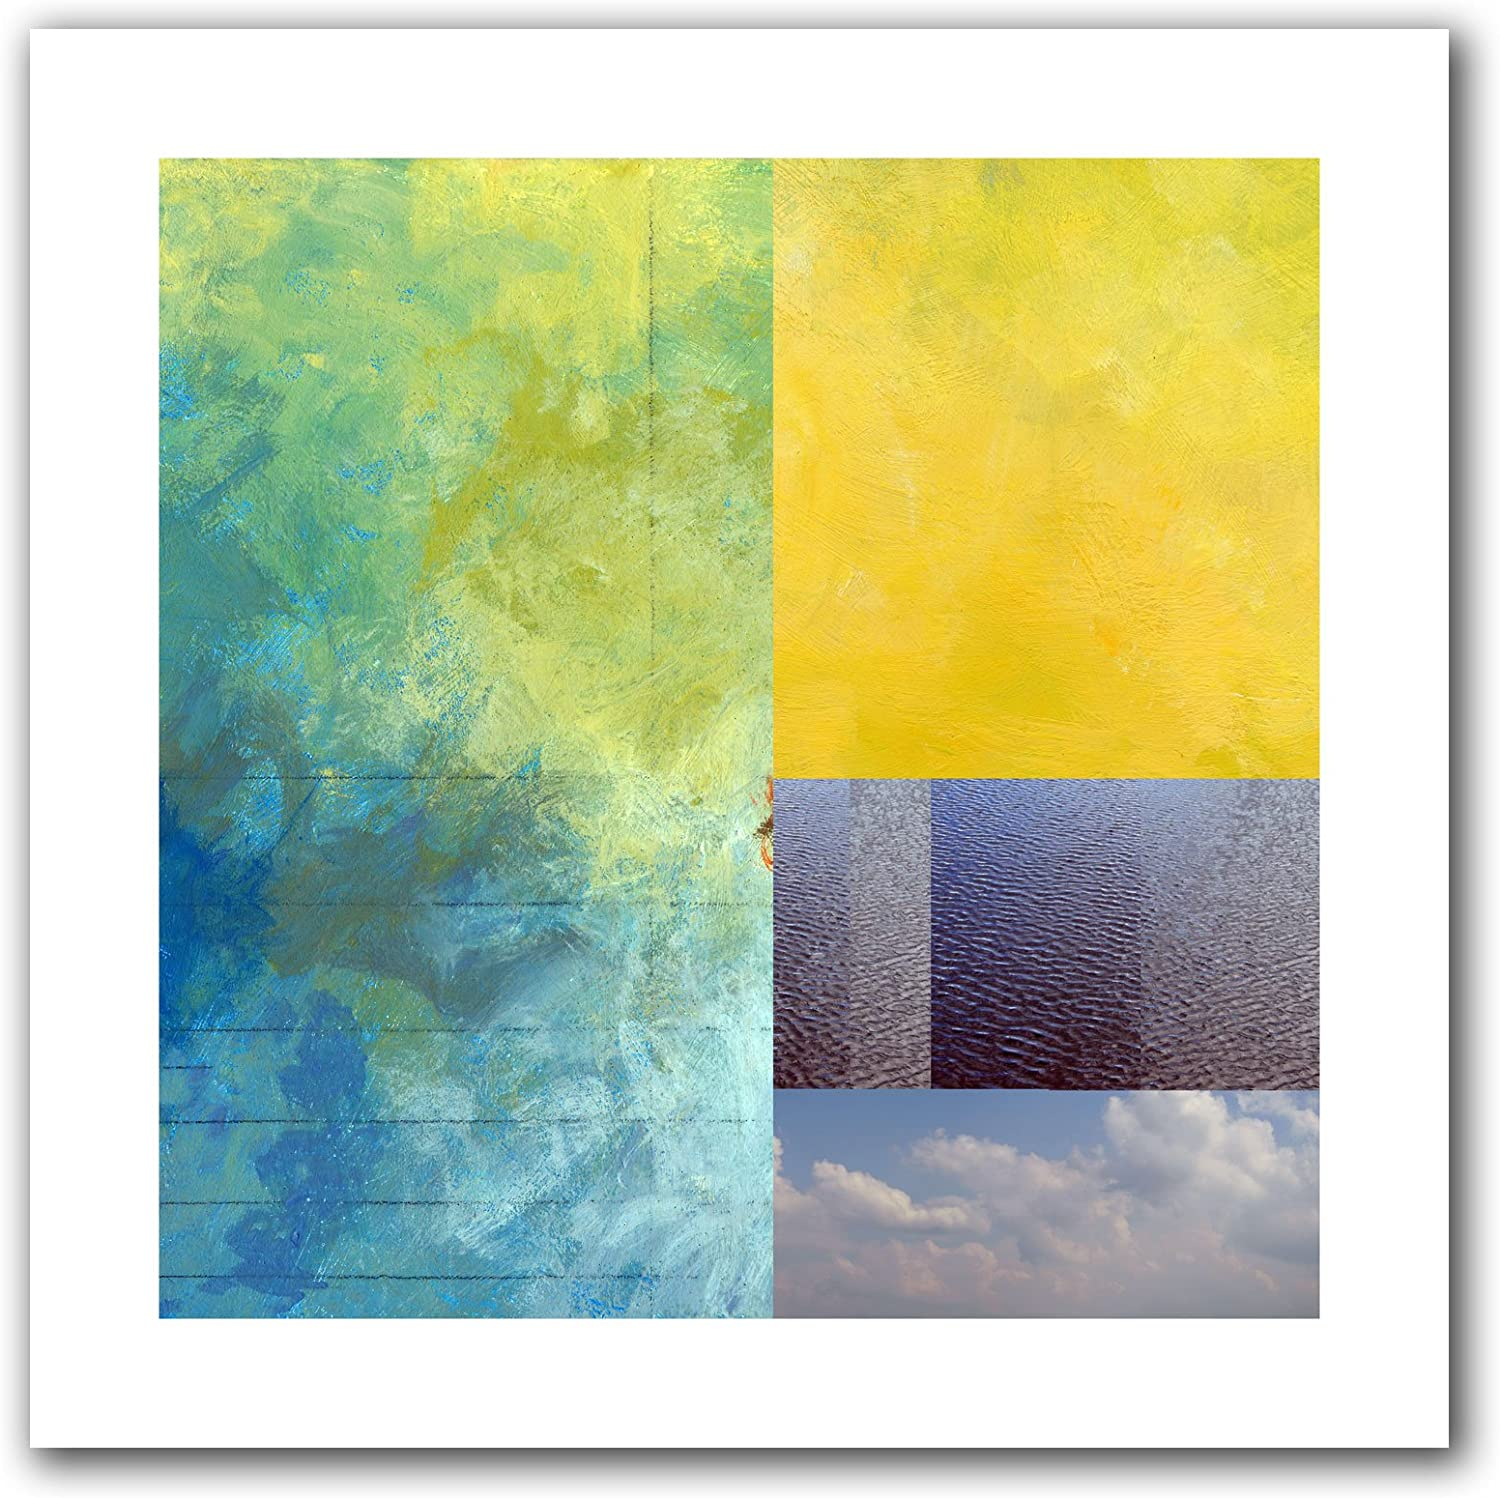 Art Wall Earth Textures Squares I Unwrapped Canvas Art by Jan Weiss, 22 by 22-Inch